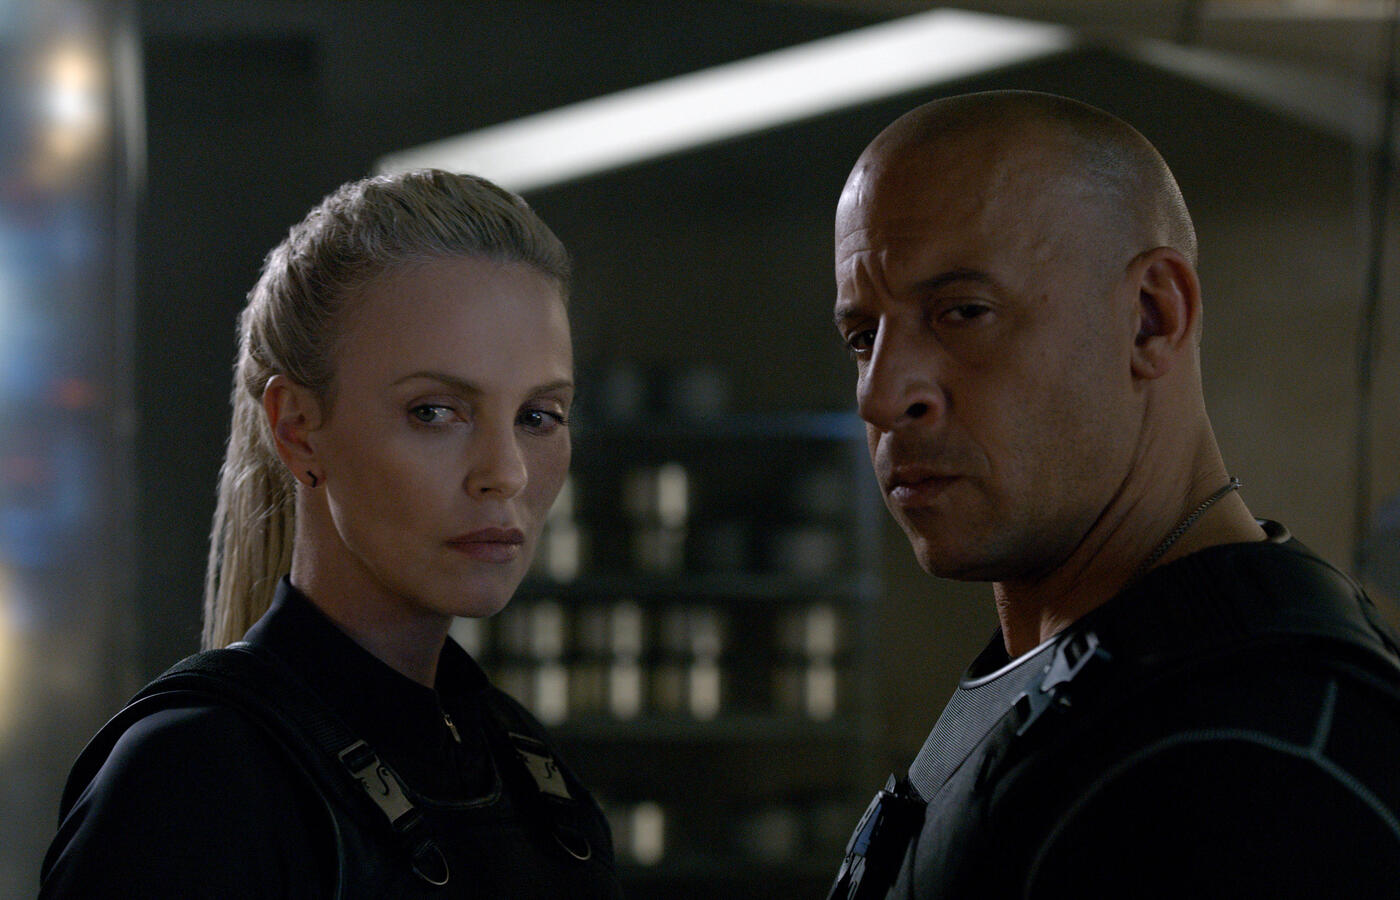 charlize-theron-vin-diesel-in-the-fate-of-the-furious-new.jpg